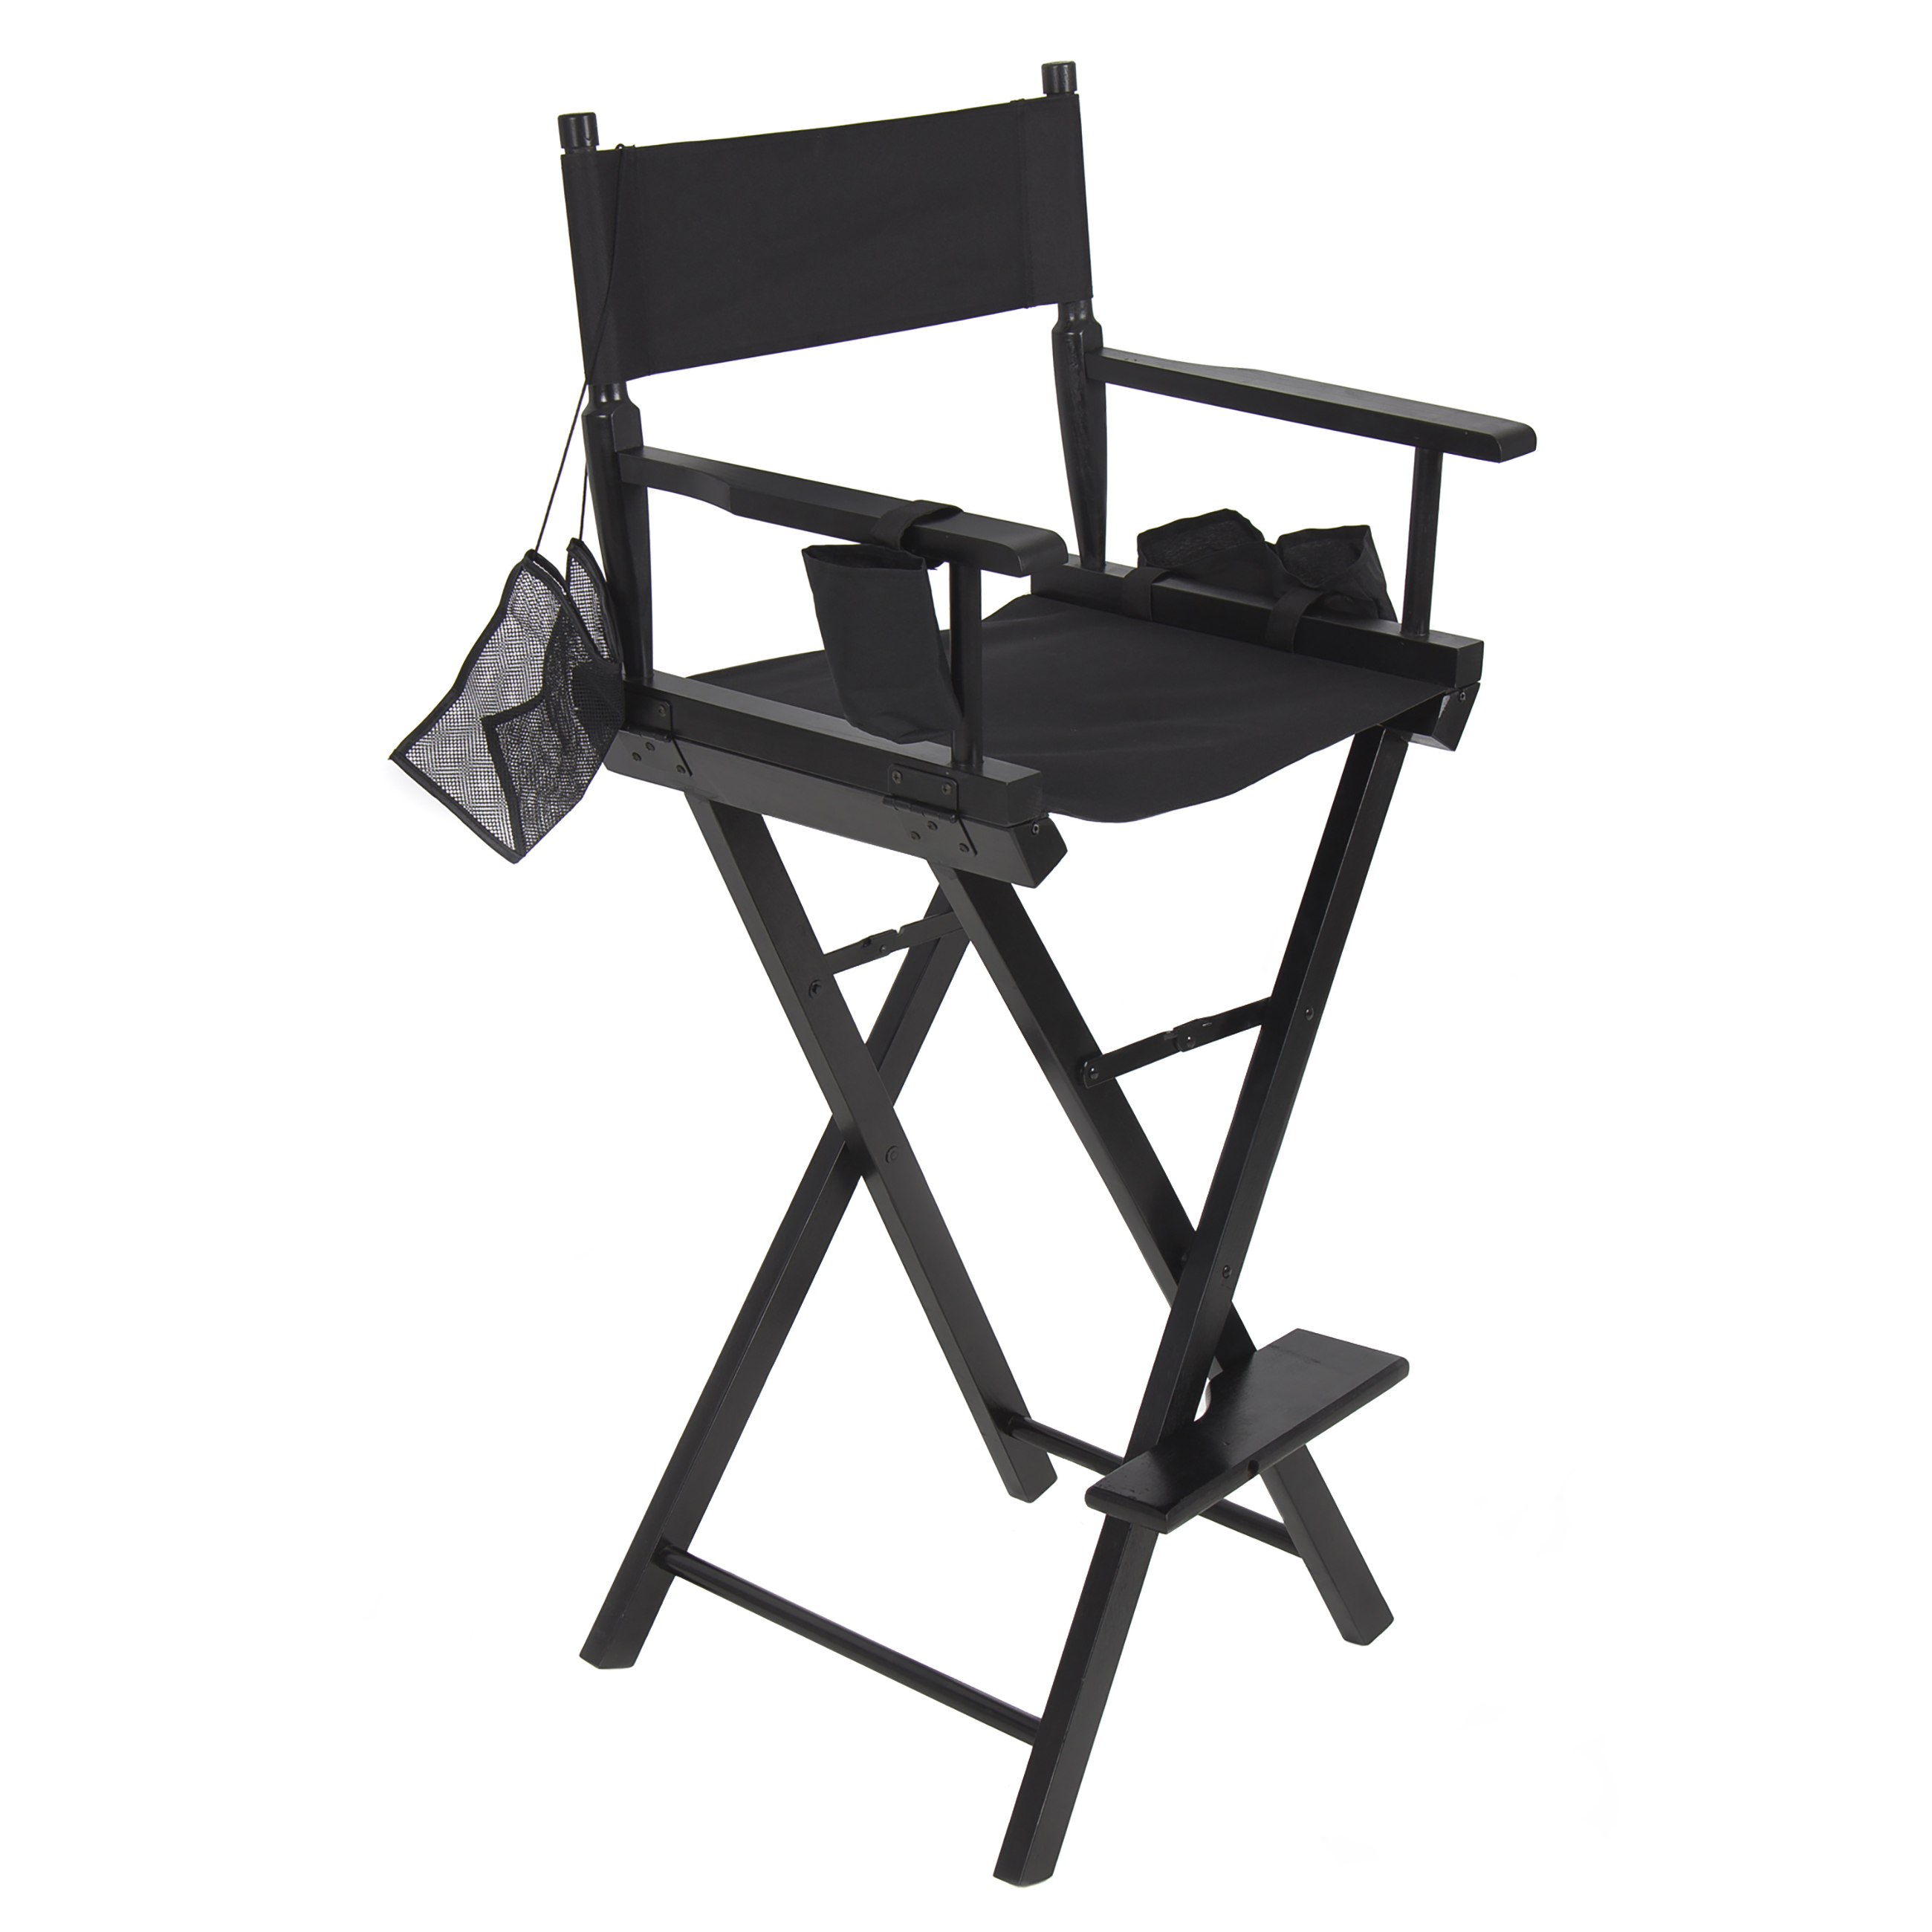 Best Choice Products Foldable Lightweight Professional Makeup Artist Directors Chair - Black  sc 1 st  Walmart & Best Choice Products Foldable Lightweight Professional Makeup Artist ...